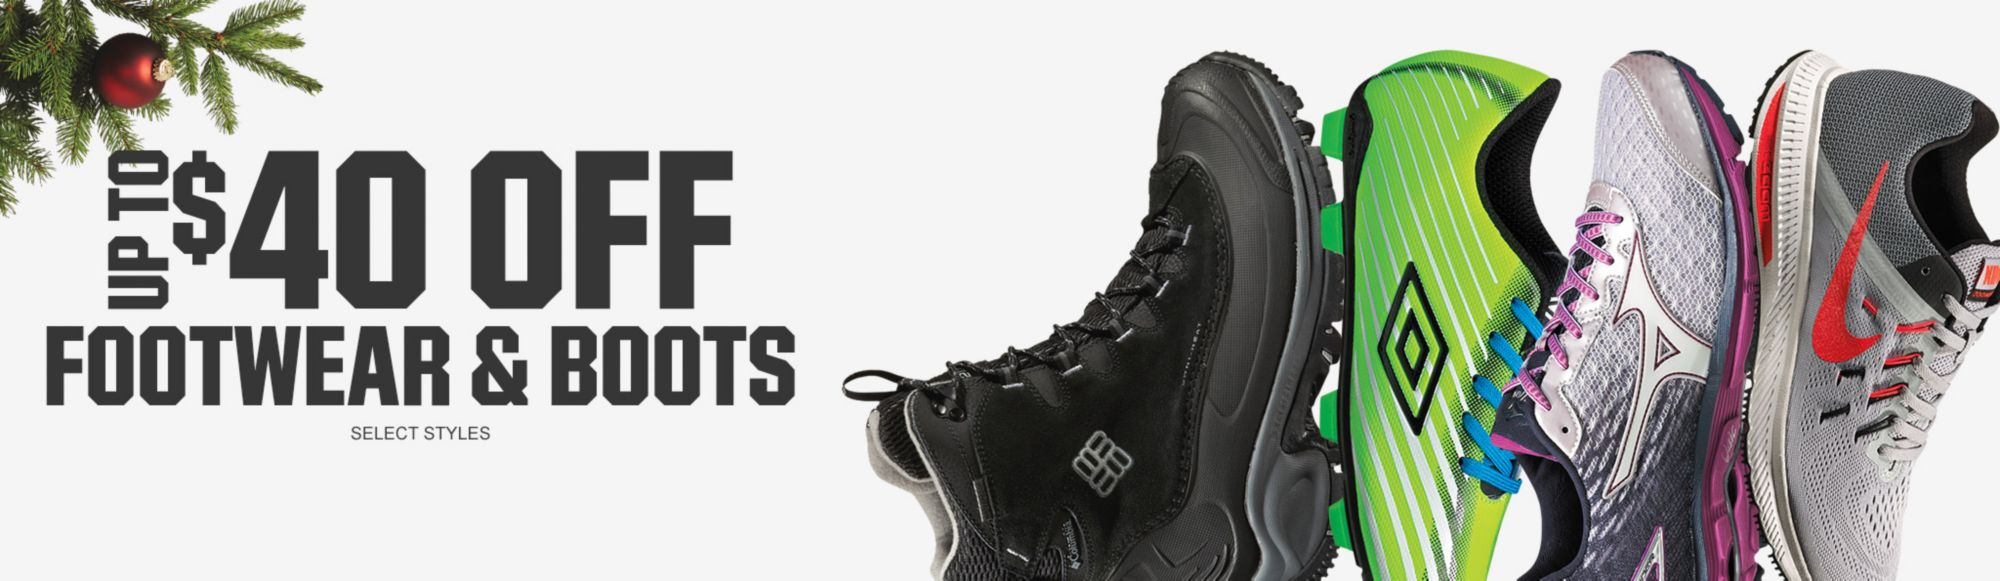 Shop $40 Off Select Footwear